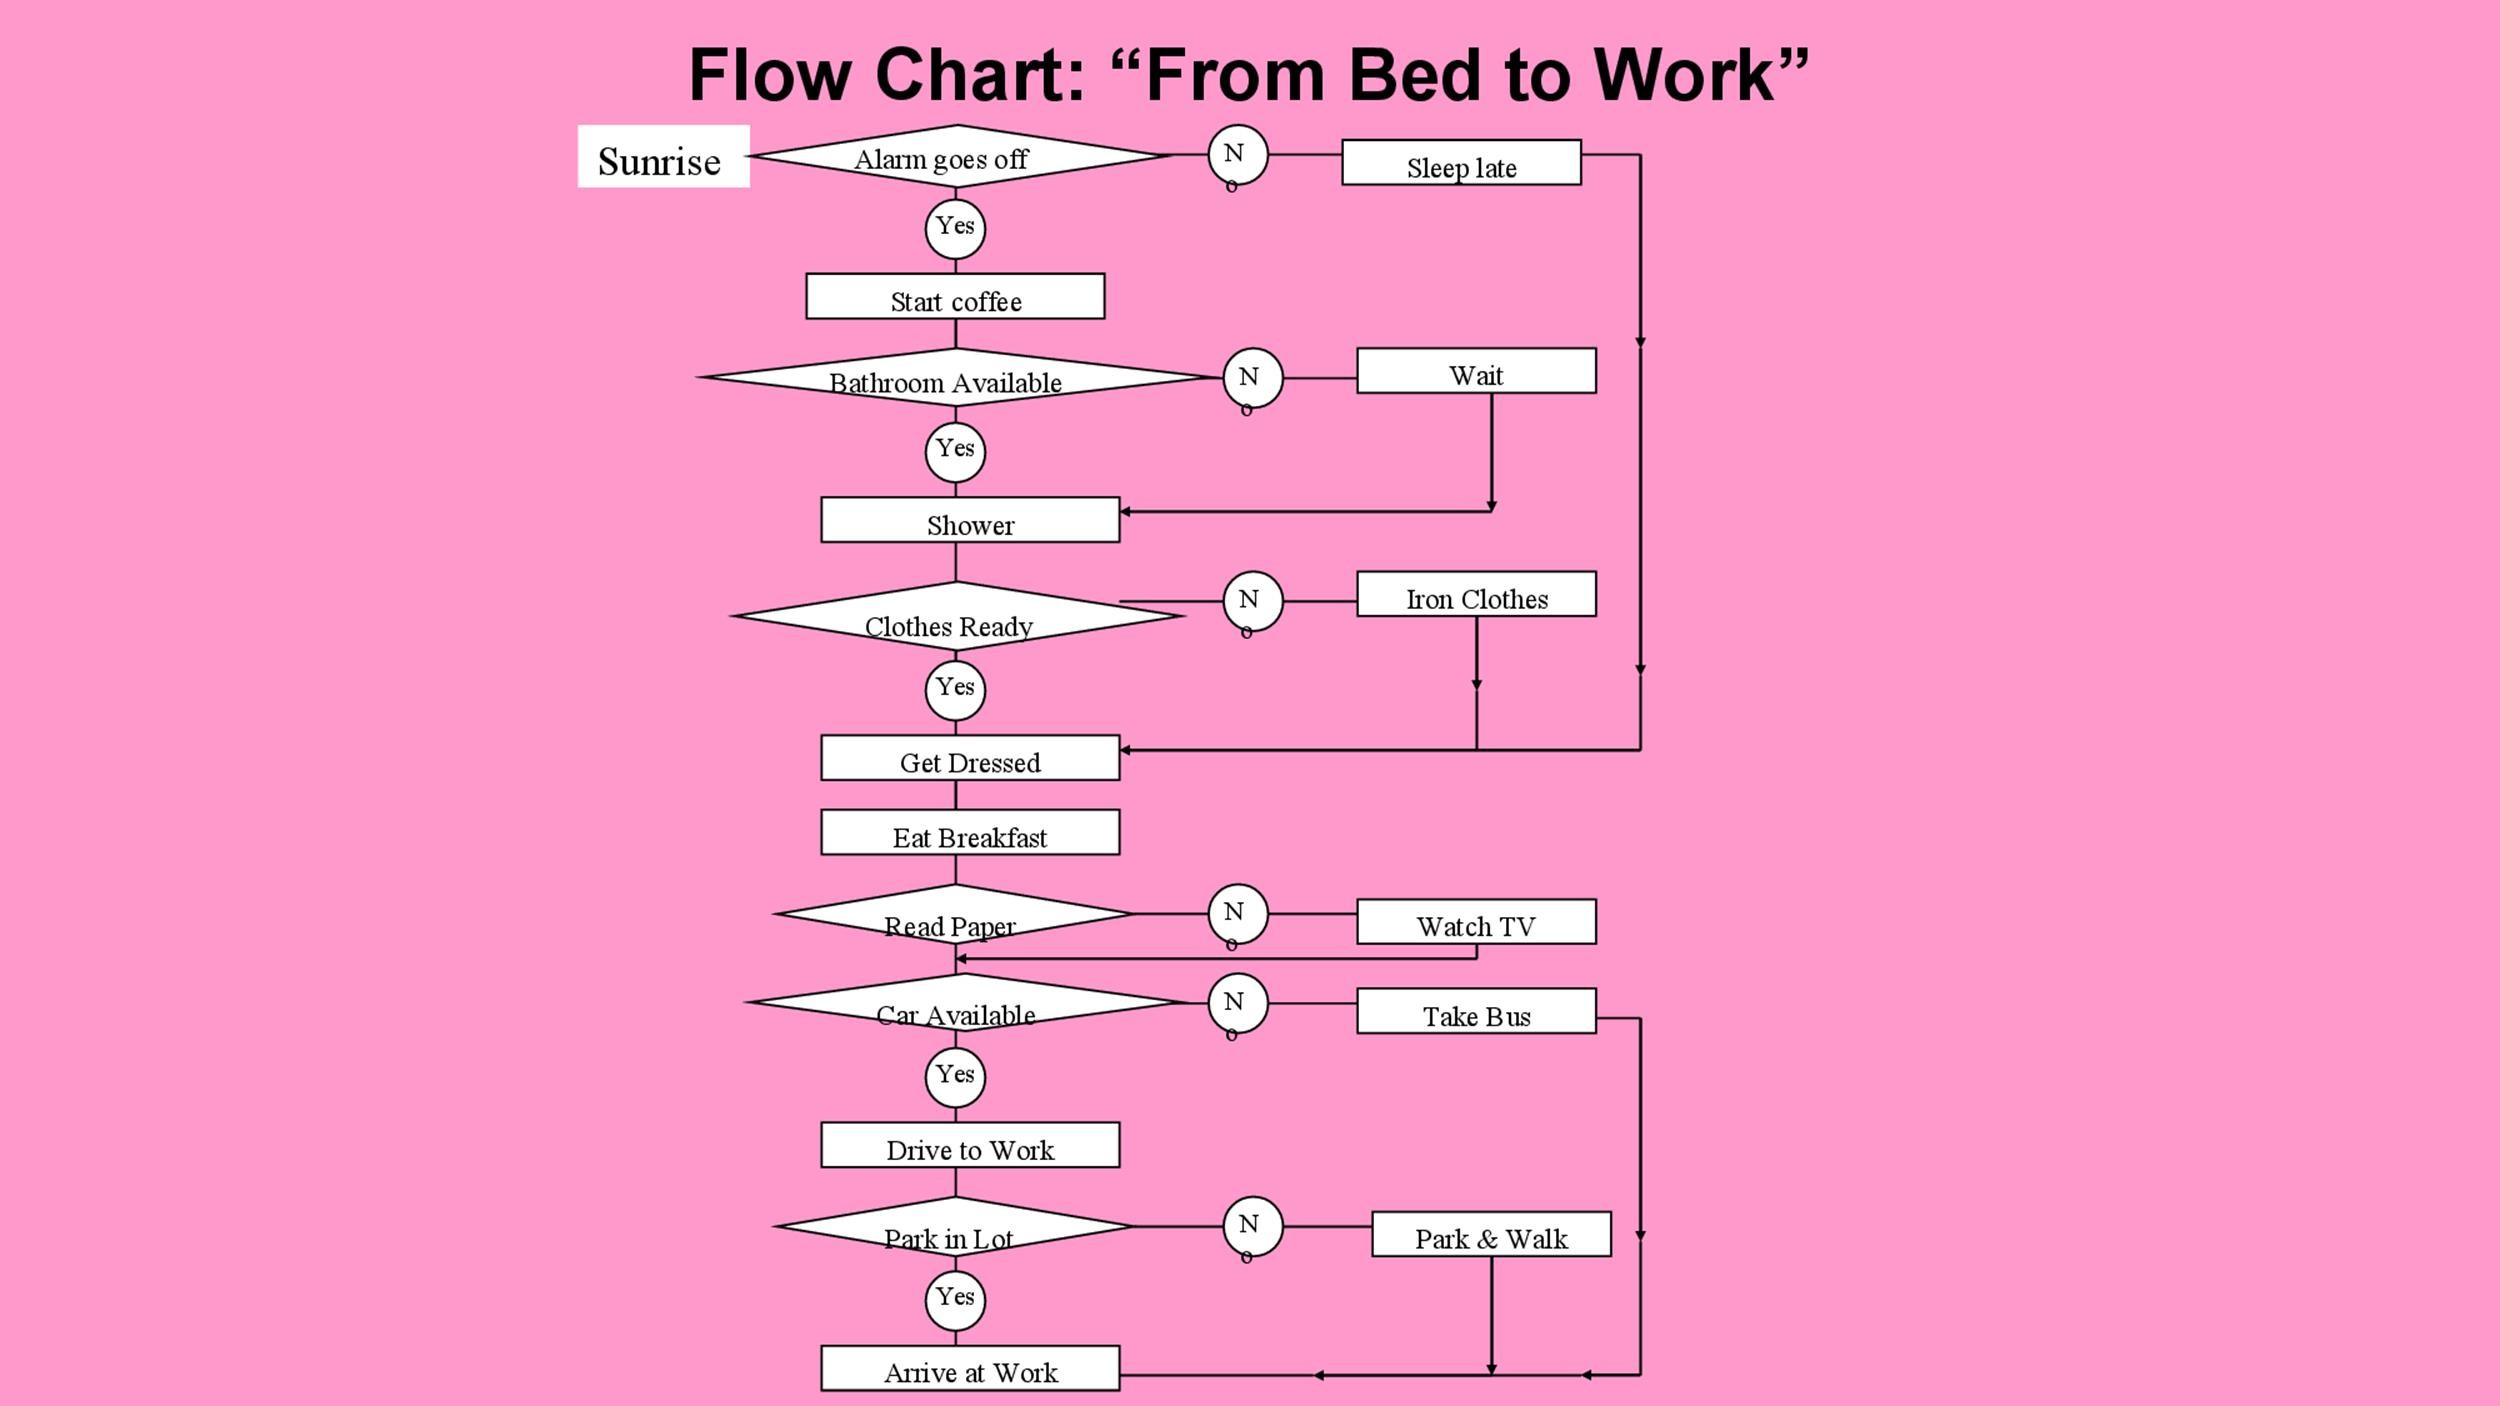 40 Fantastic Flow Chart Templates Word, Excel, Power Point